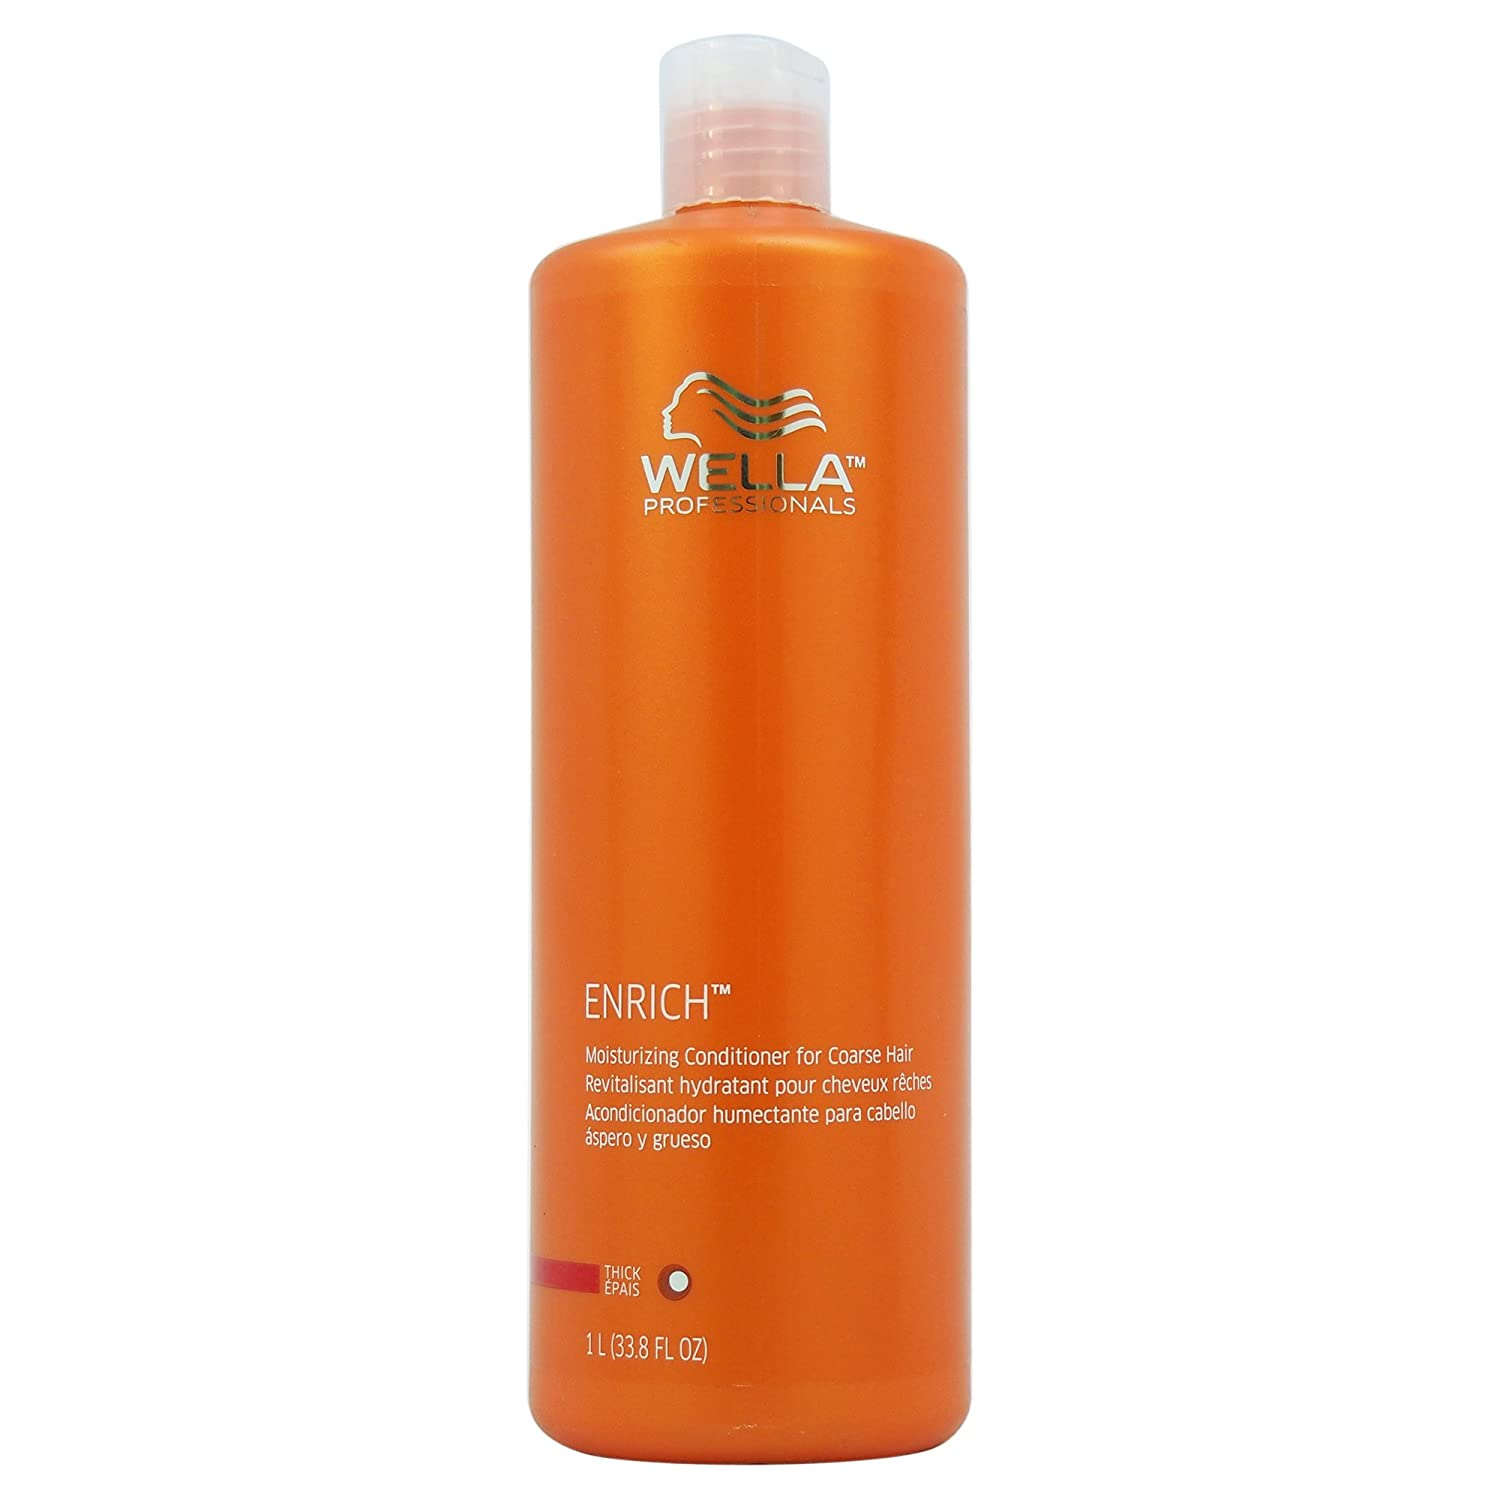 Wella Professionals Enrich Moisturizing Shampoo for Coarse Thick Hair 1L